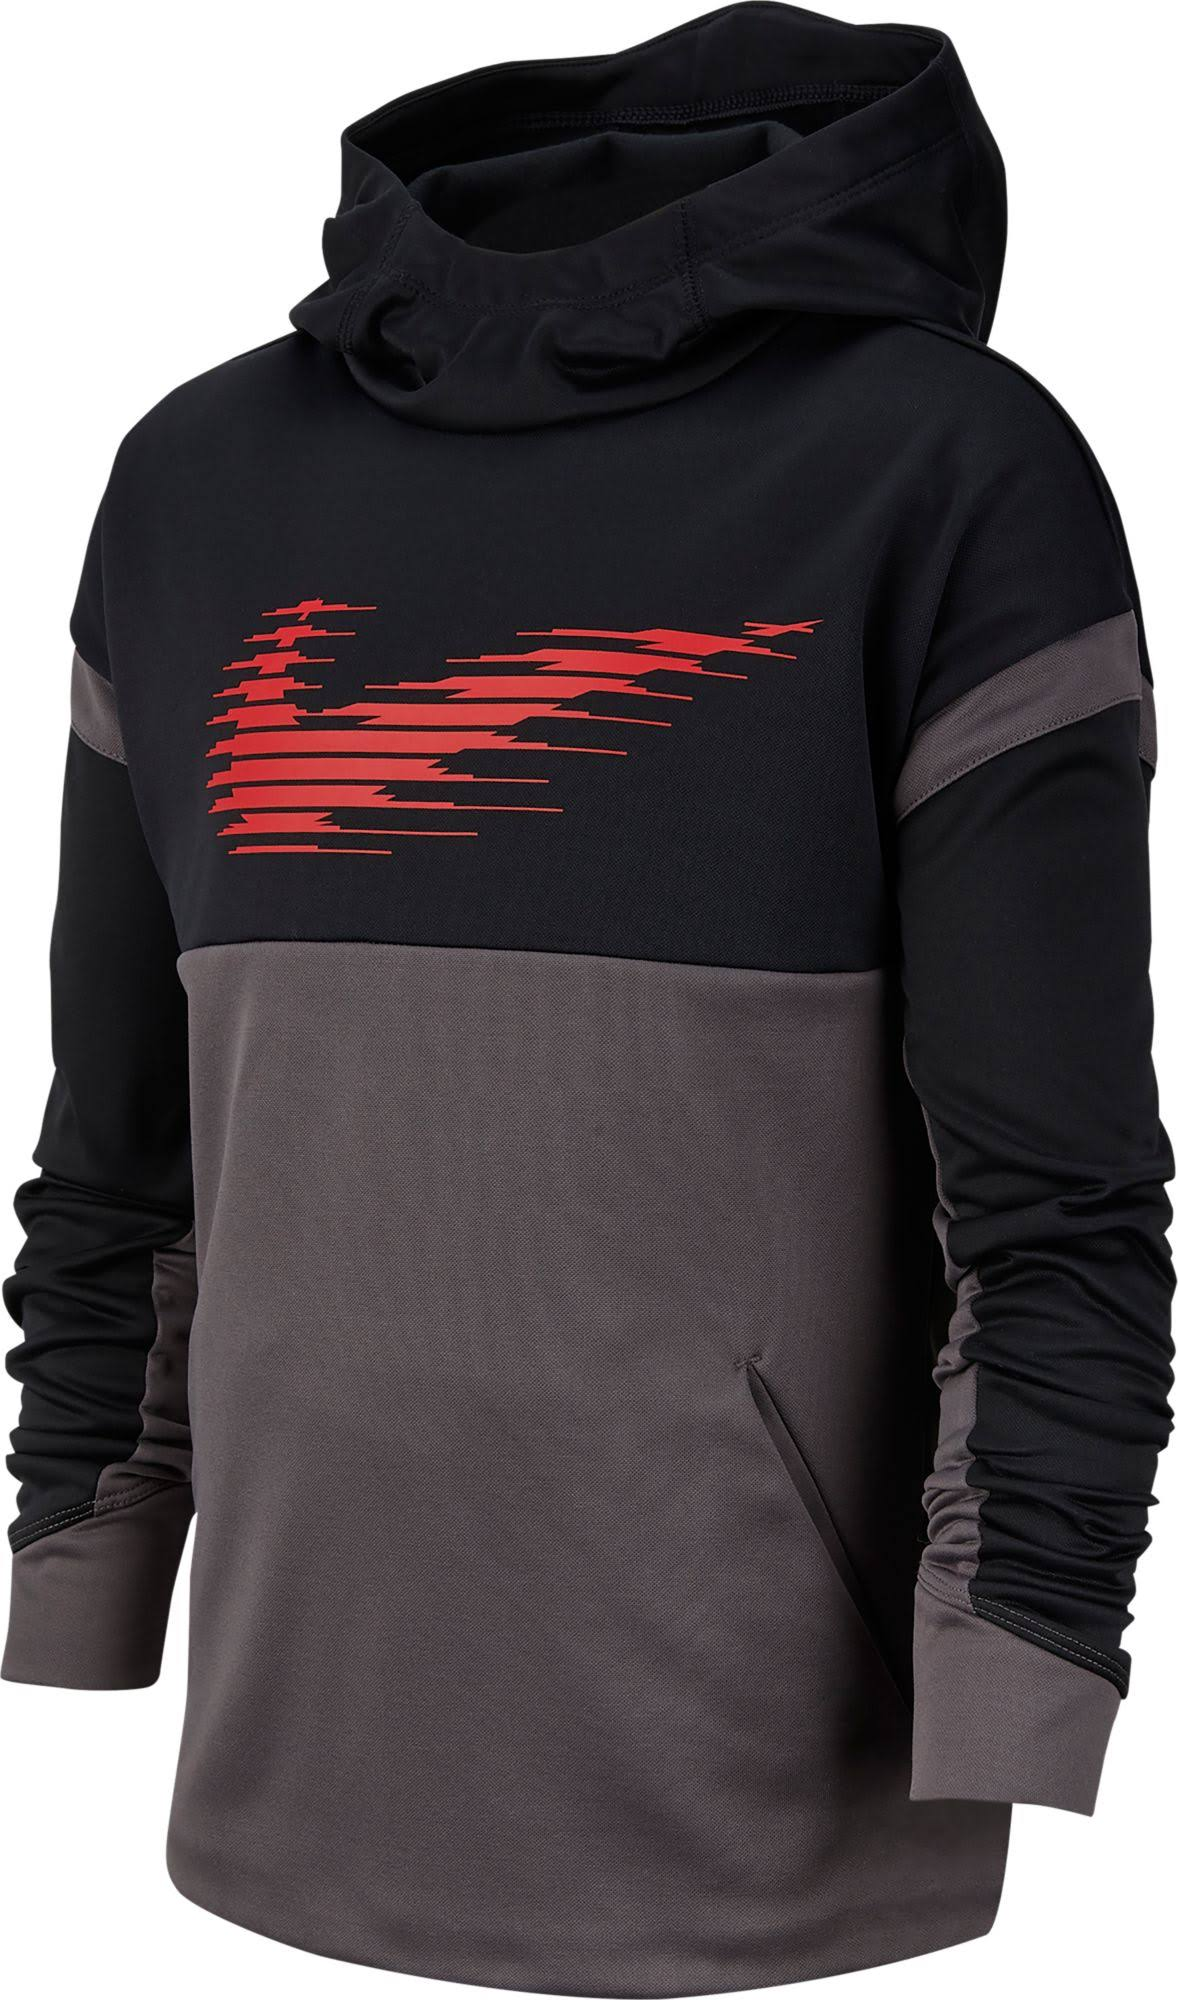 Nike Boys' Black/Thunder Grey Therma Pullover Hoodie - L